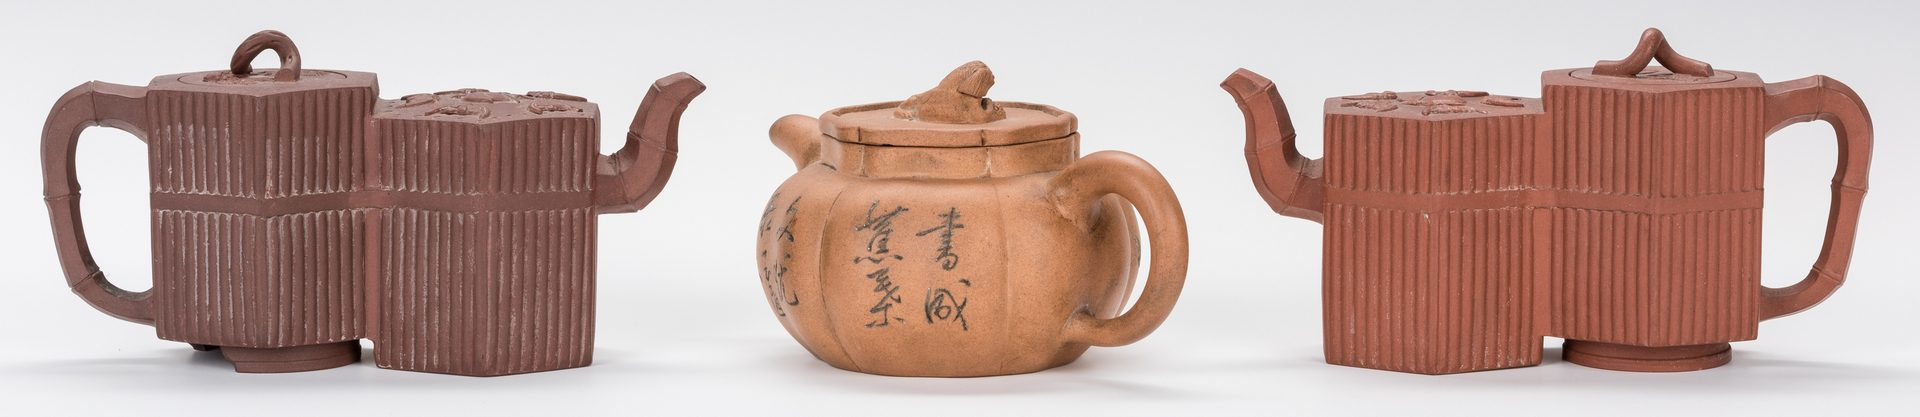 Lot 37: 3 Chinese Yixing Teapots, inc. 2 Double Forms